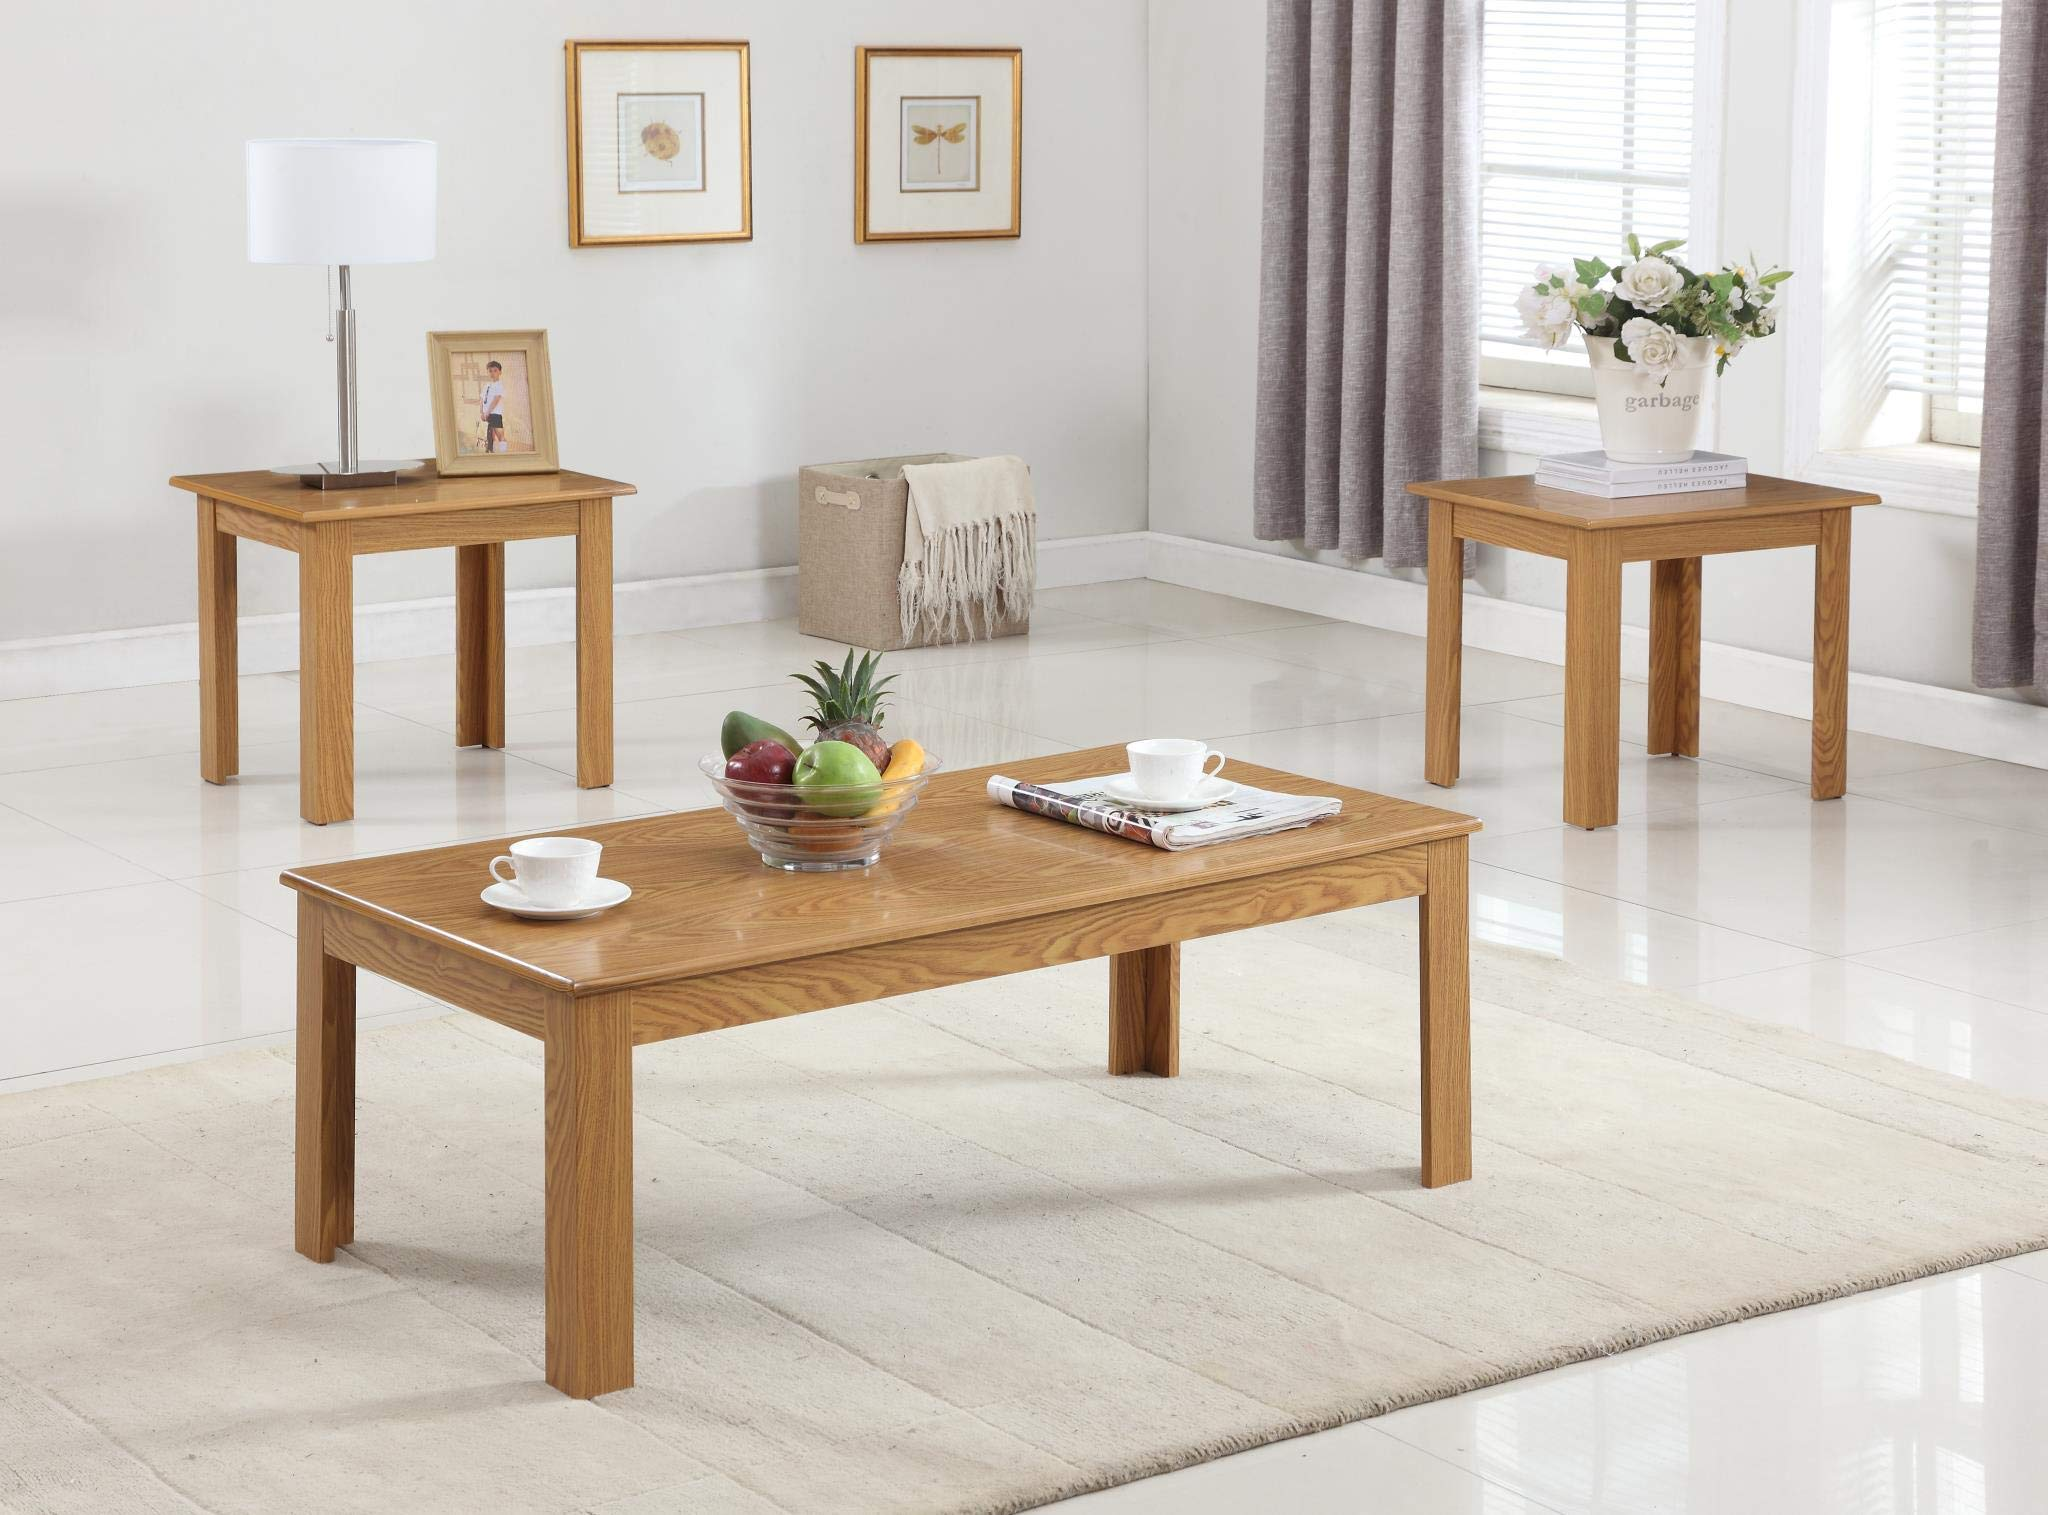 GTU Furniture Occassional Modern, Sophisticated, Vintage Glam, 3-Piece Square Accent Table Set with 1 Coffee Table, and 2 End Tables in a Light Oak Wood Finish, Mesitas para Sala by GTU Furntiure